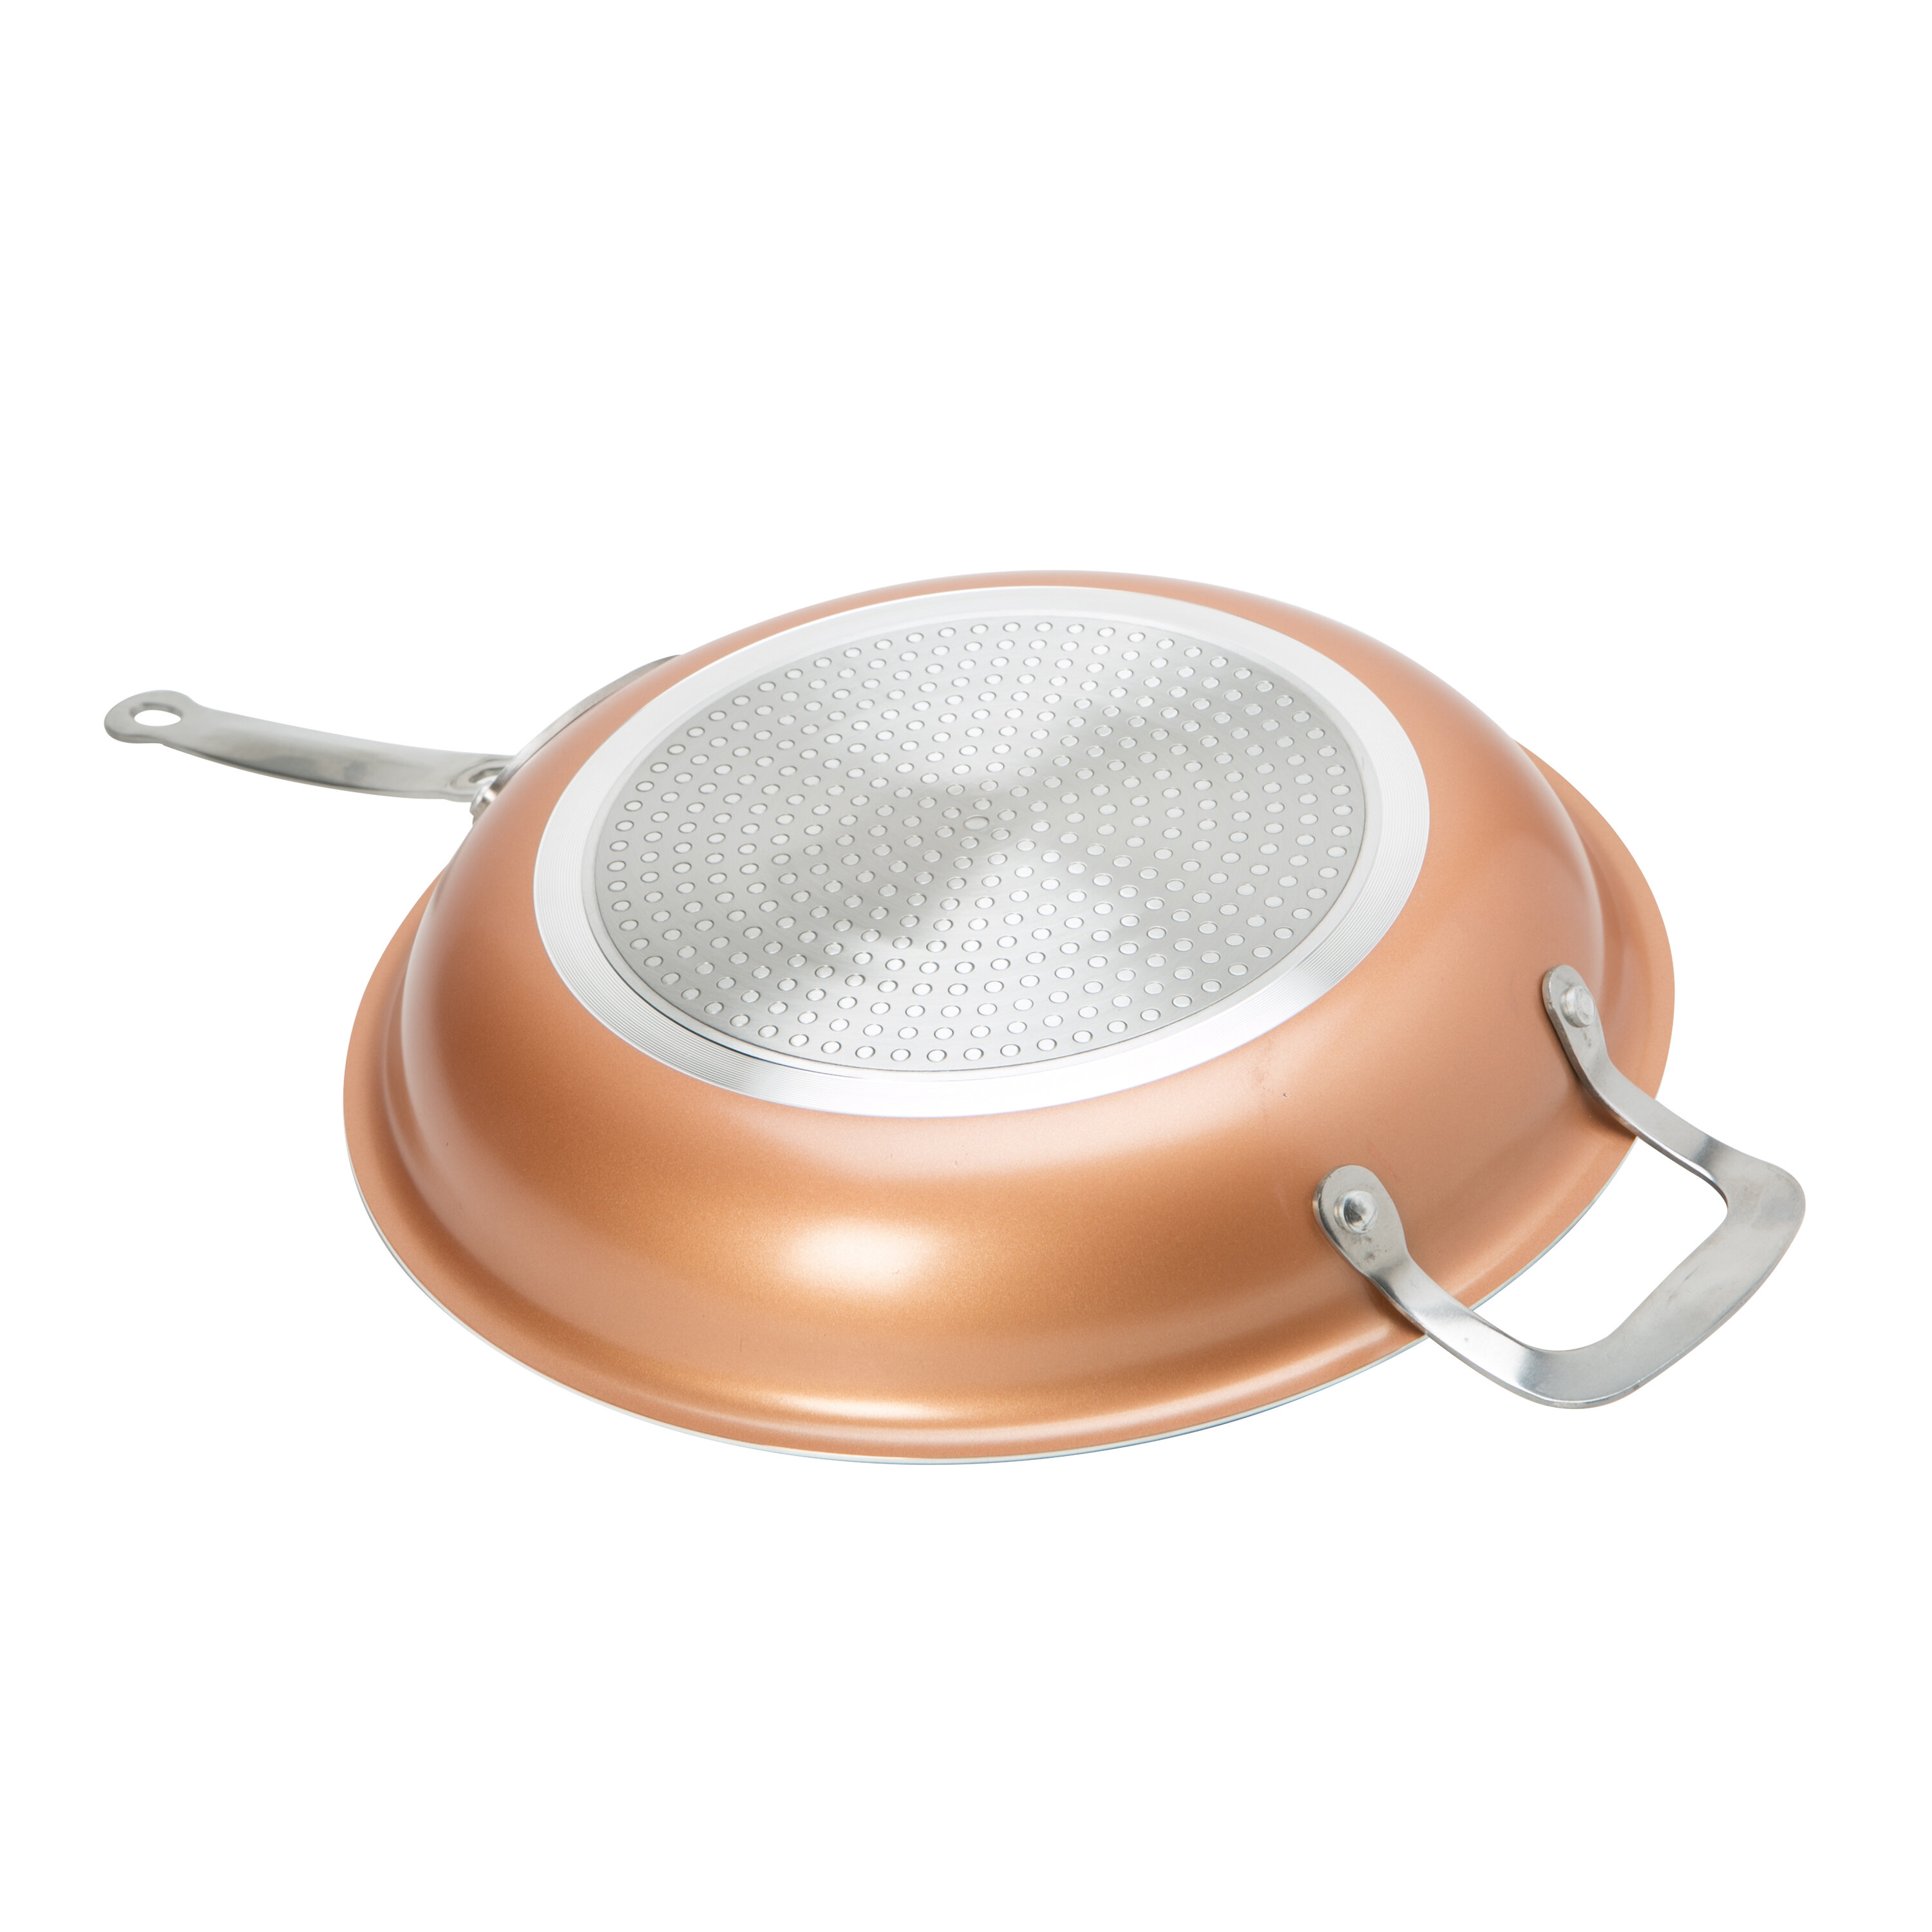 copper skillet cooking cook with your favorite pan in the kitchen